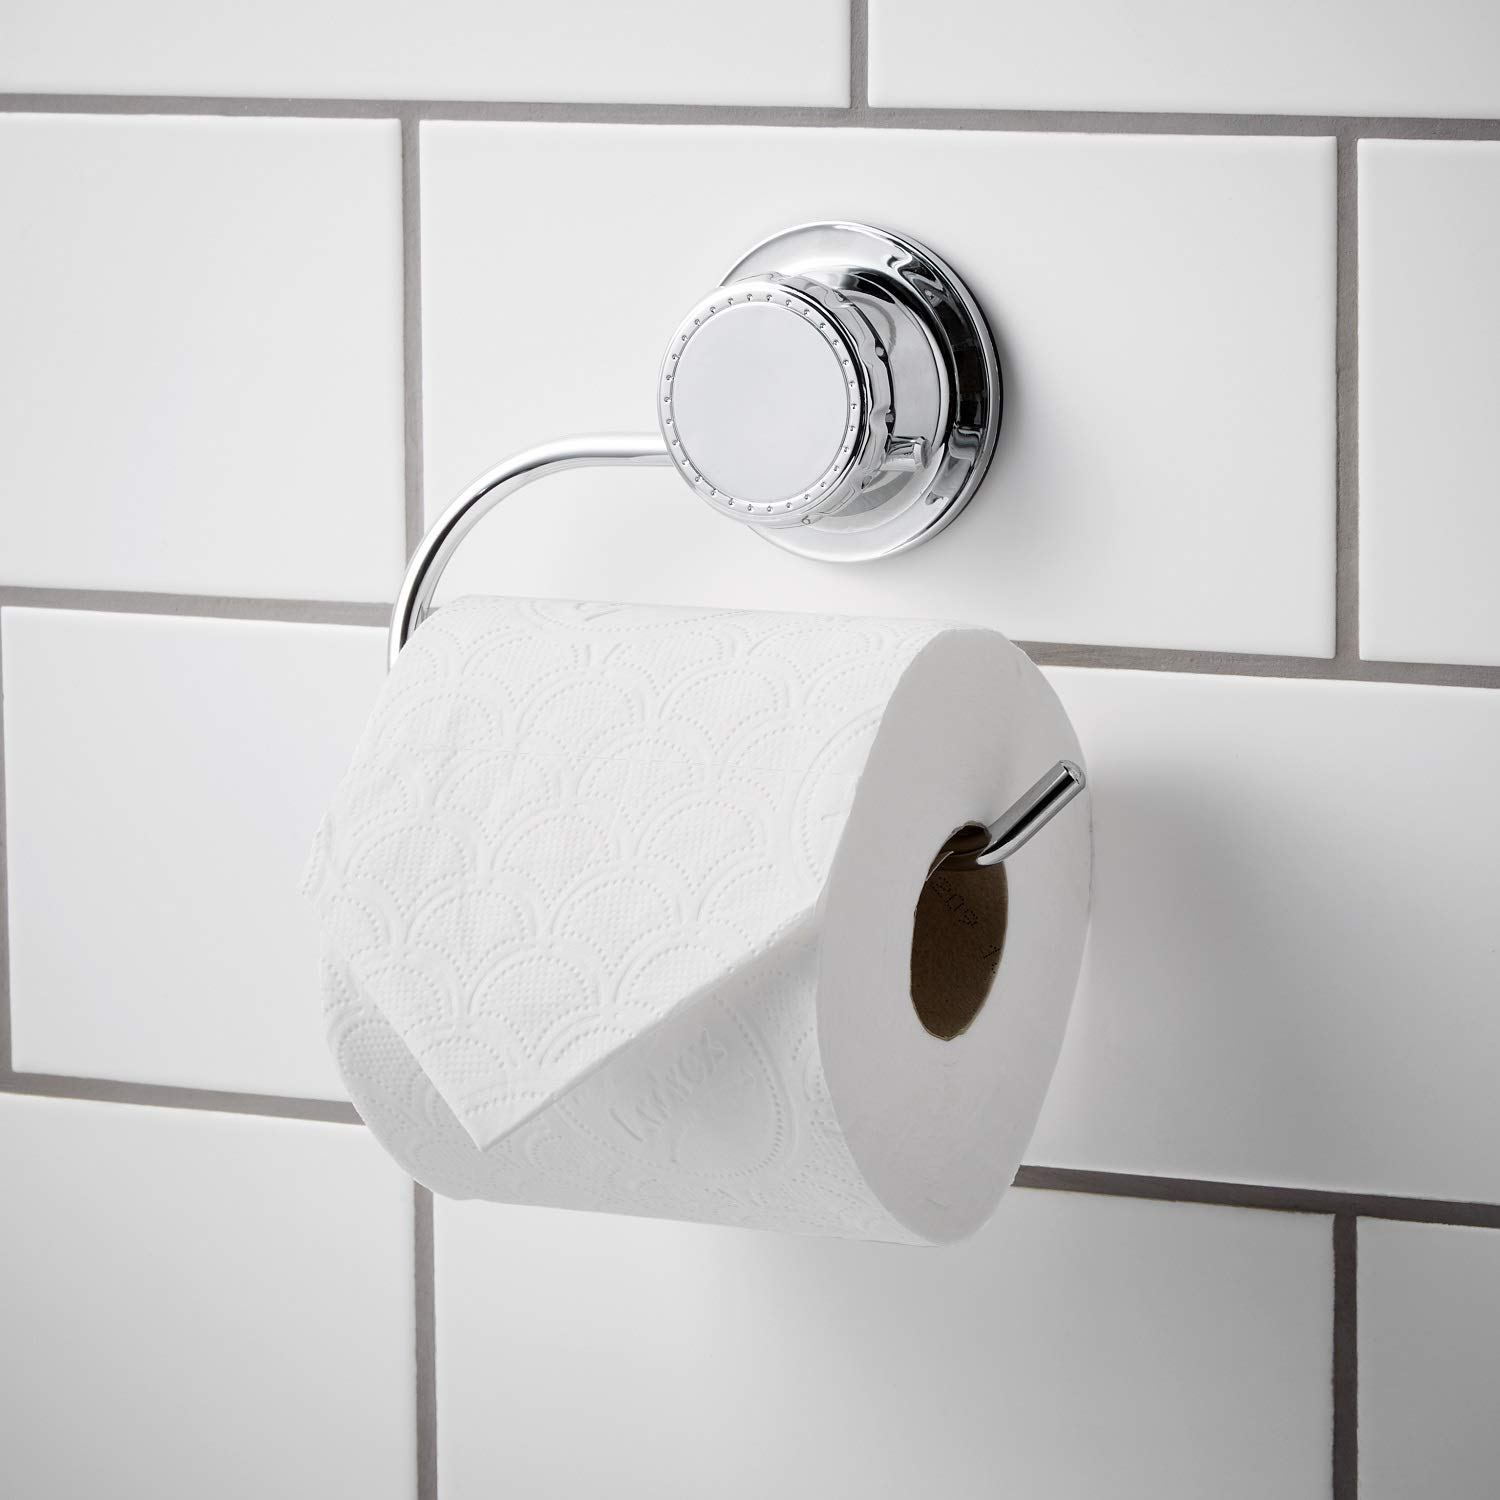 simplywire - Extra Strong Suction Cup Toilet Roll Holder - Chrome